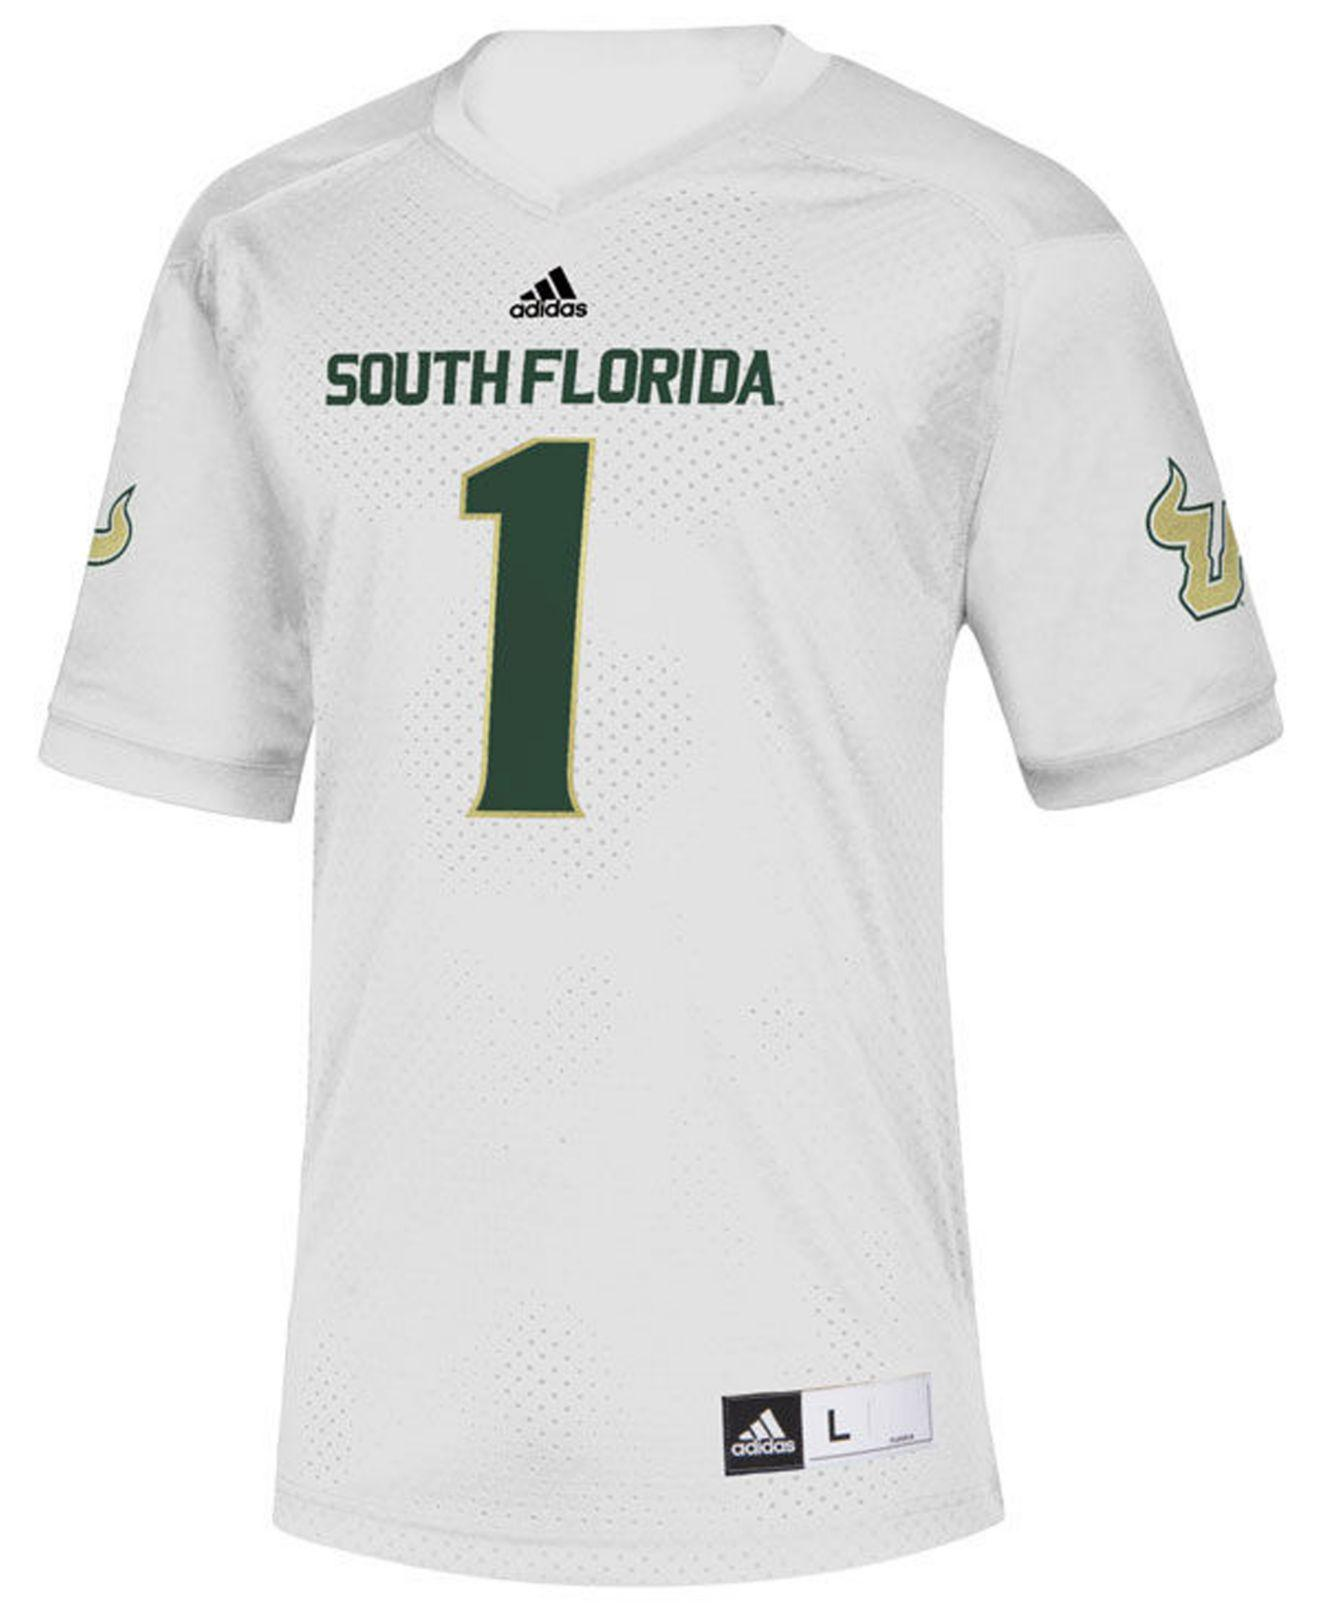 Lyst - Adidas South Florida Bulls Replica Football Jersey in White for Men 2efb70116